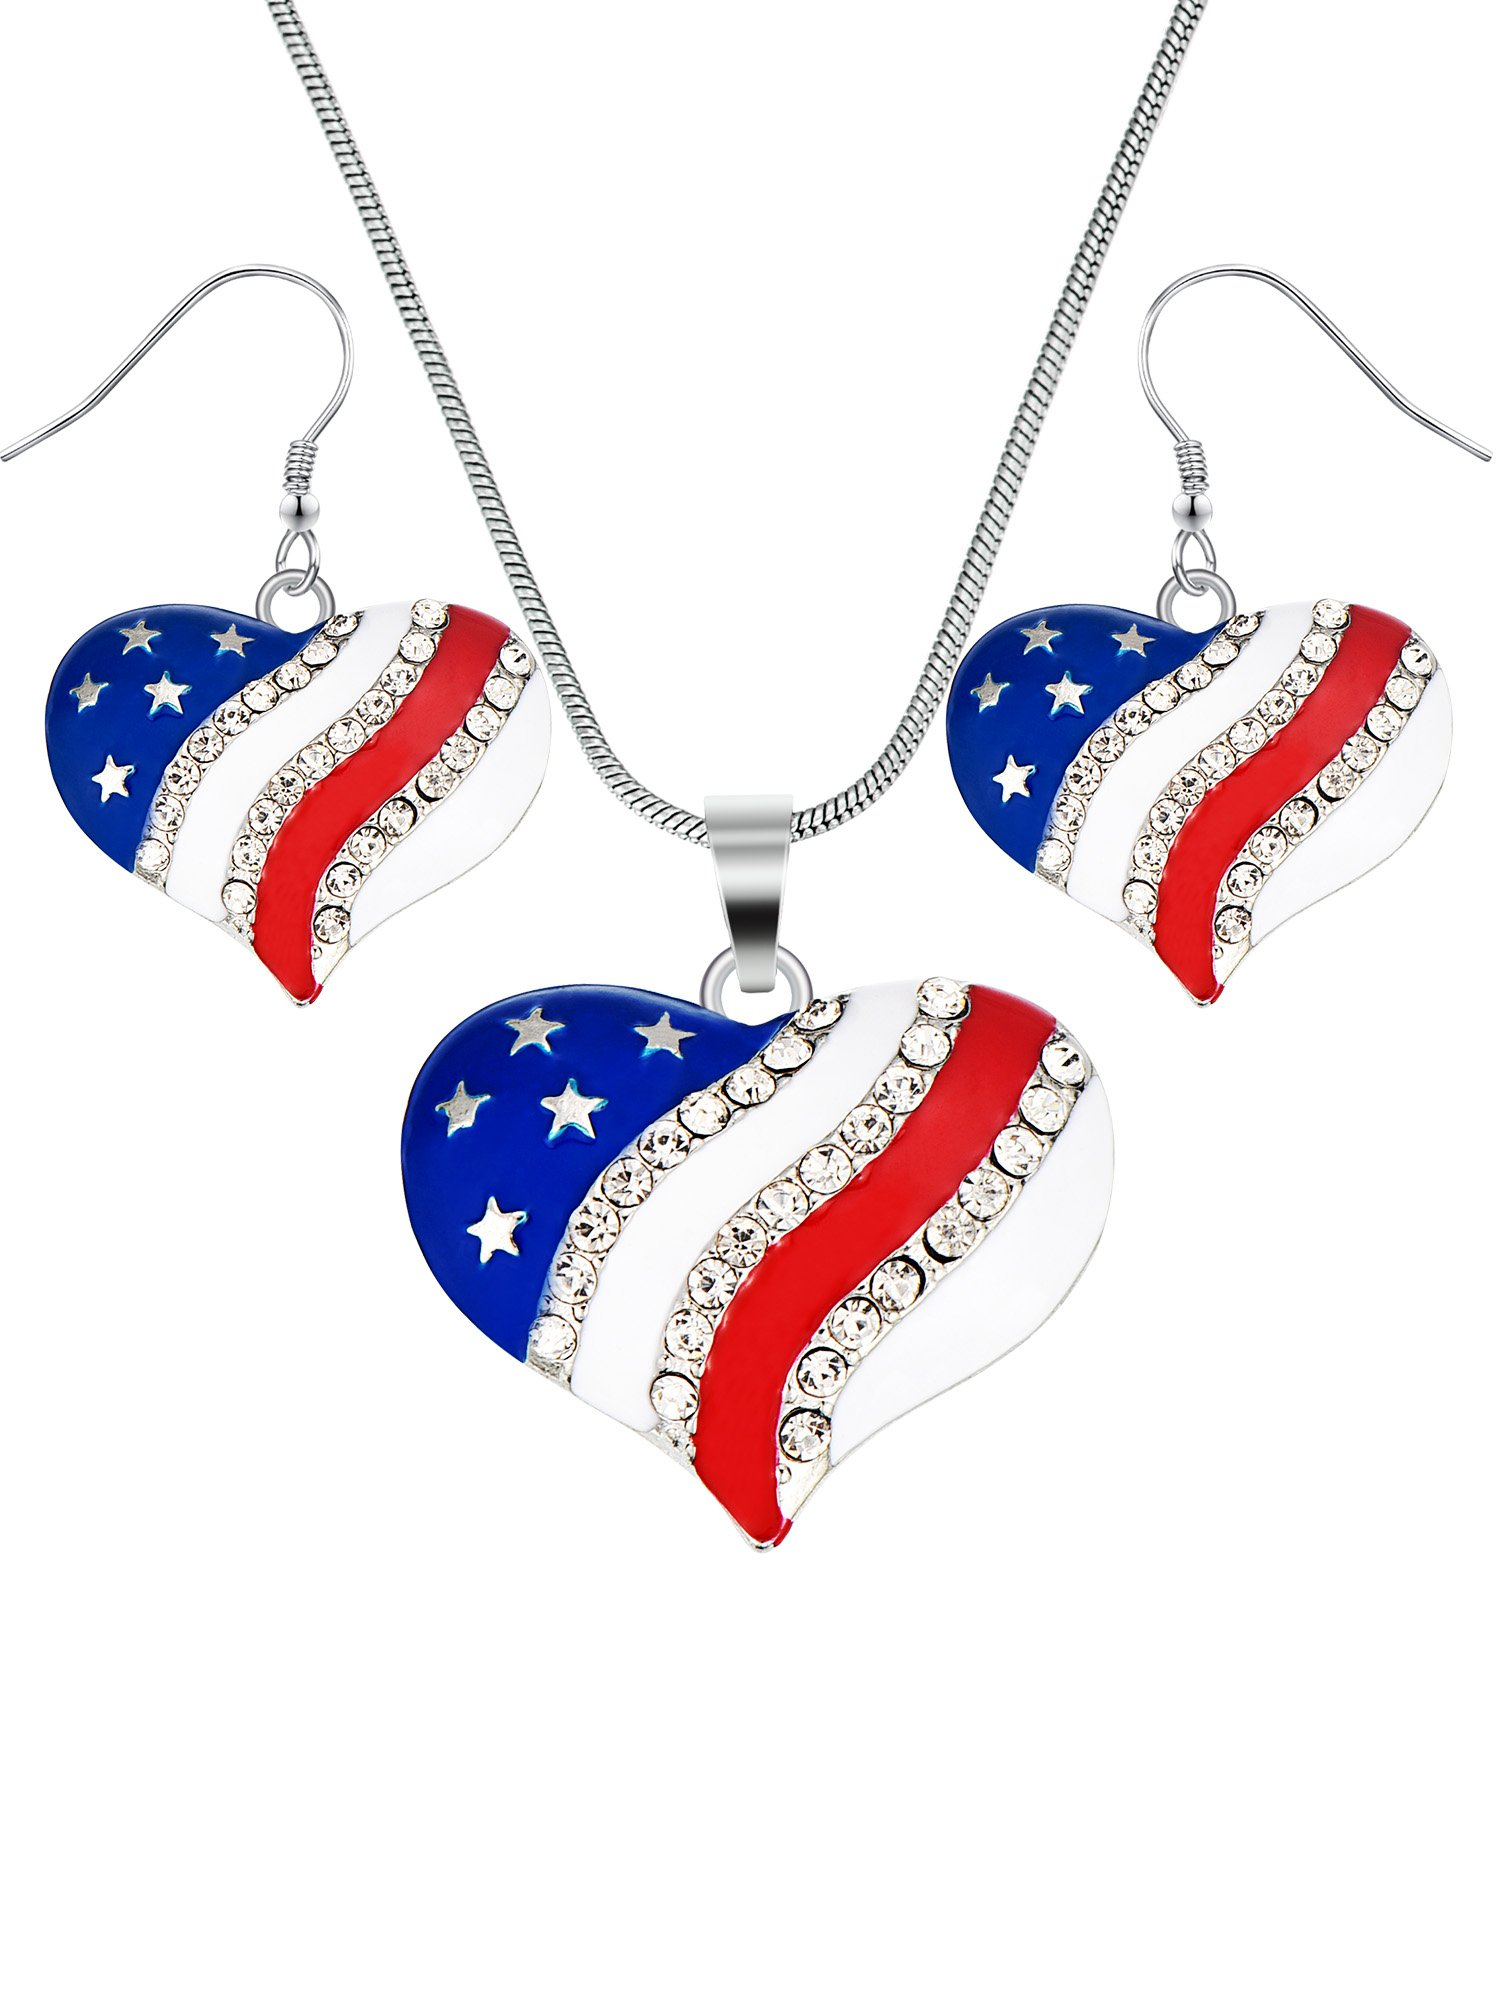 b40273dda Hestya USA American National Flag Star Patriotic 4th of July Independence  Day Memorial Day Pendant Necklace